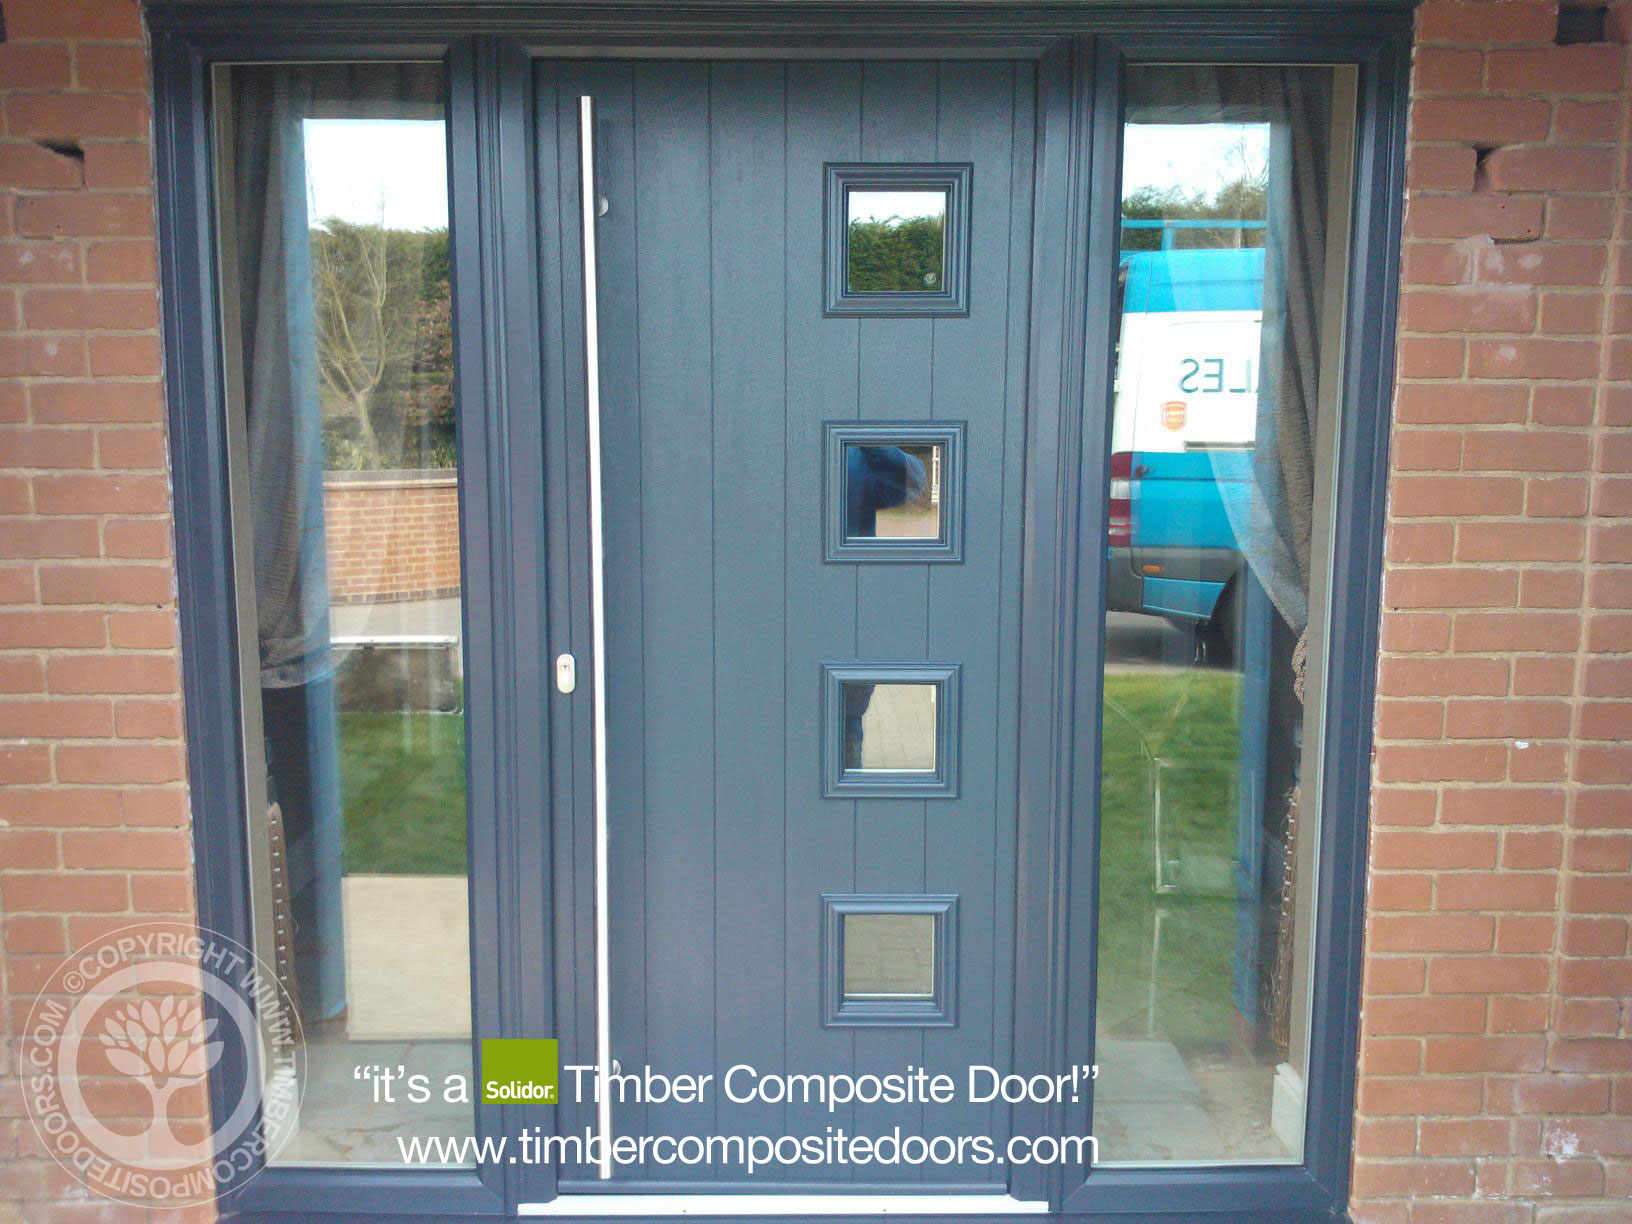 Solidor-Milano-Anthracite-Grey-Timber-Composite-Door2 & Enhancing your home : Solidor Milano | Timber Composite Doors Blog pezcame.com